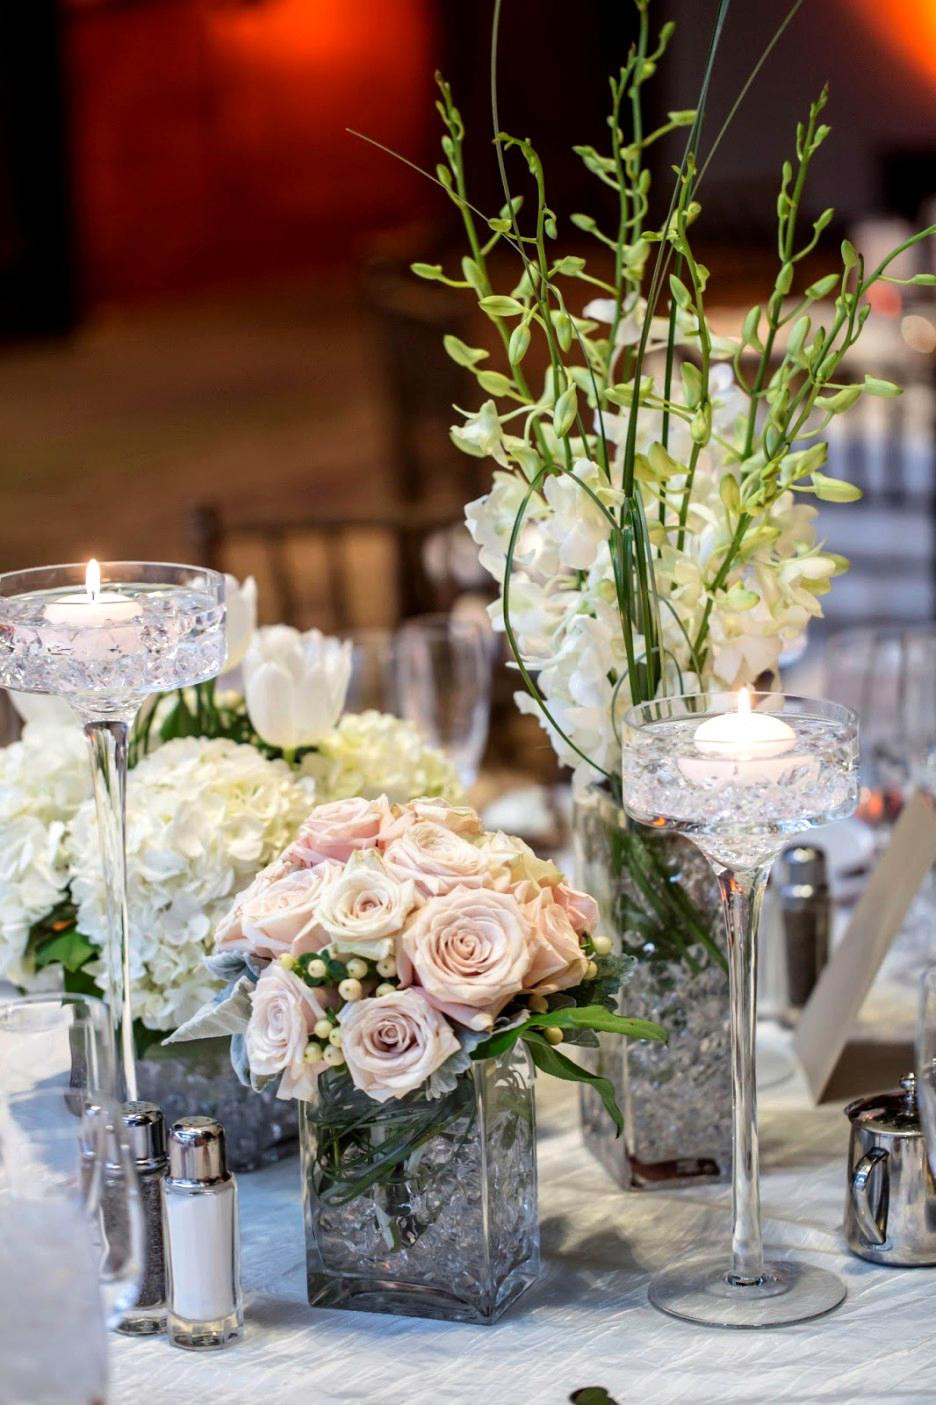 Tall Cylinder Vases for Wedding Centerpieces Of Beautiful Table Vase Decorations 22 Impressive Glass Centerpieces Inside Beautiful Table Vase Decorations 22 Impressive Glass Centerpieces Delightful Candle Ideas Using White Flower Wedding Centerpiece Along with Square Cubic